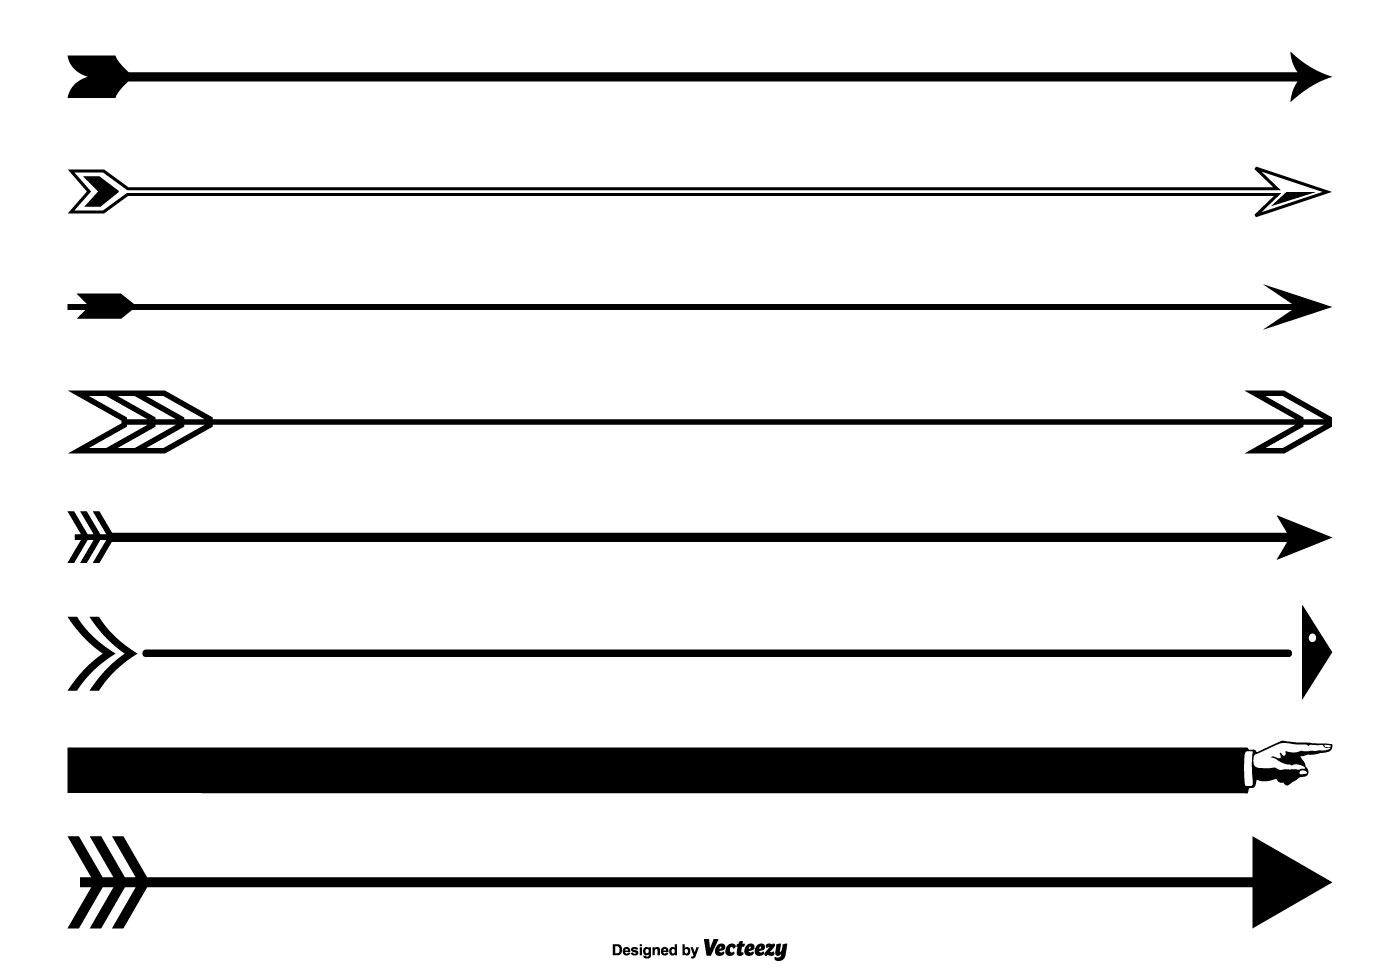 Free clipart dividers png black and white library Web Dividers Free Vector Art - (140 Free Downloads) png black and white library